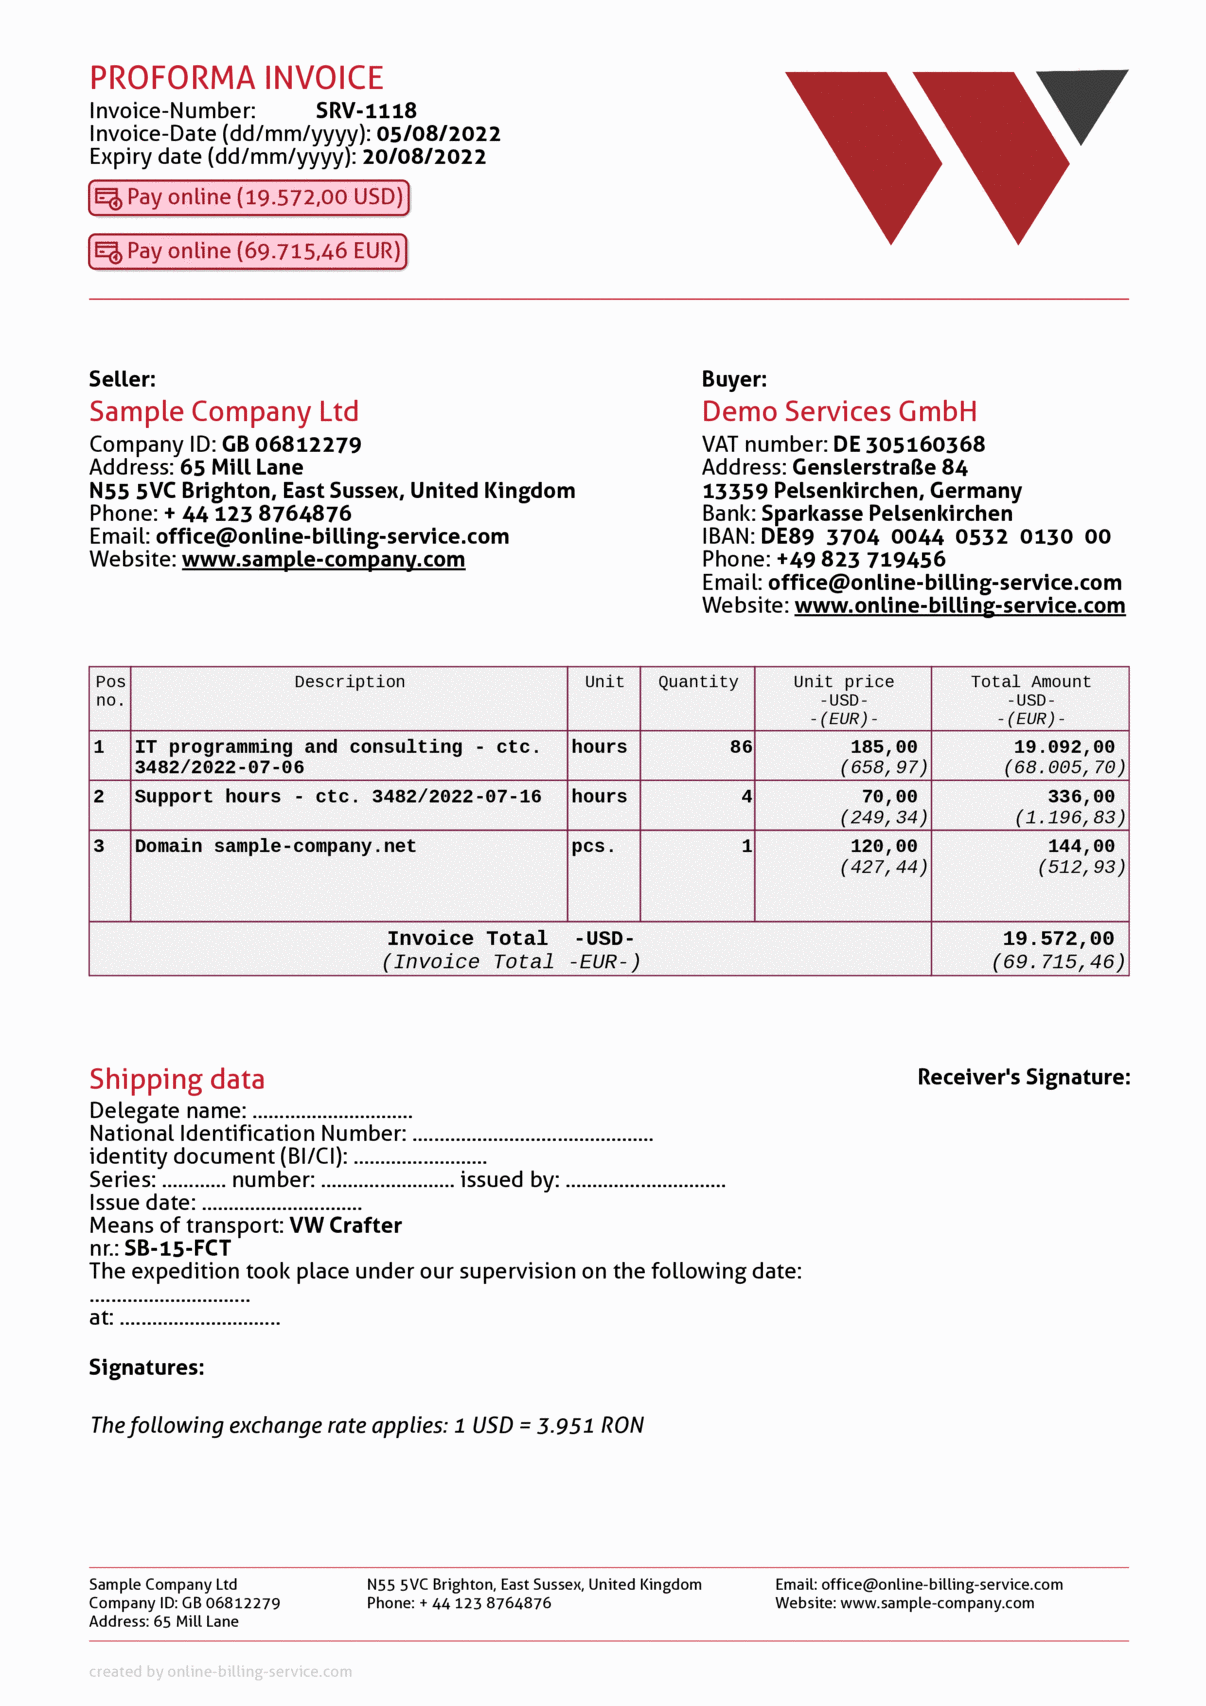 Proforma invoice without vat, usd + eur, english